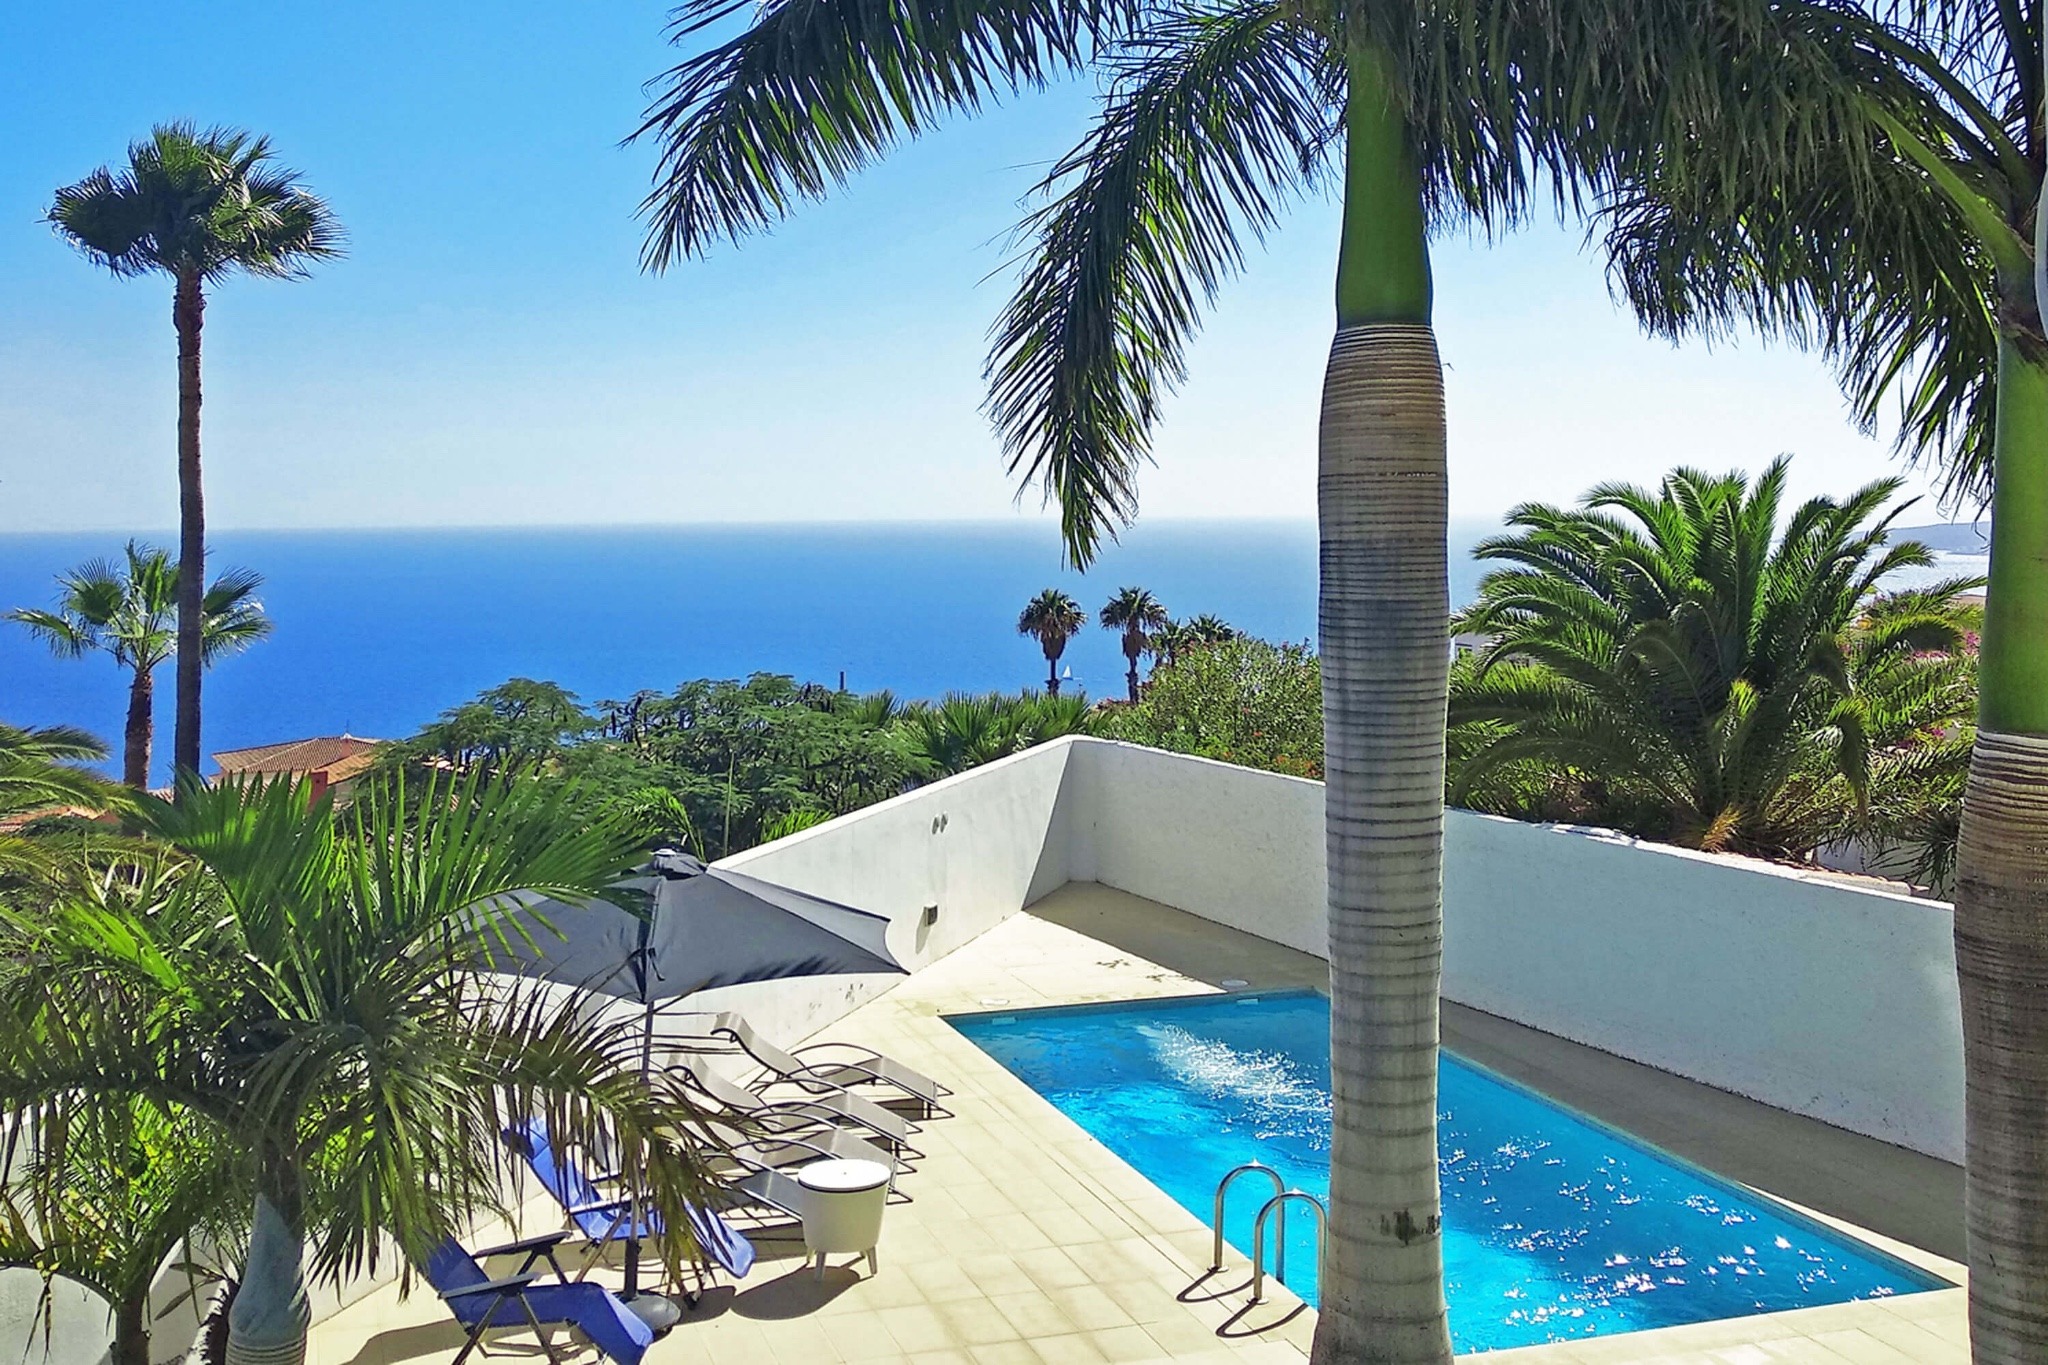 Modern luxury villa with private pool and spectacular sea views near the capital Santa Cruz de Tenerife